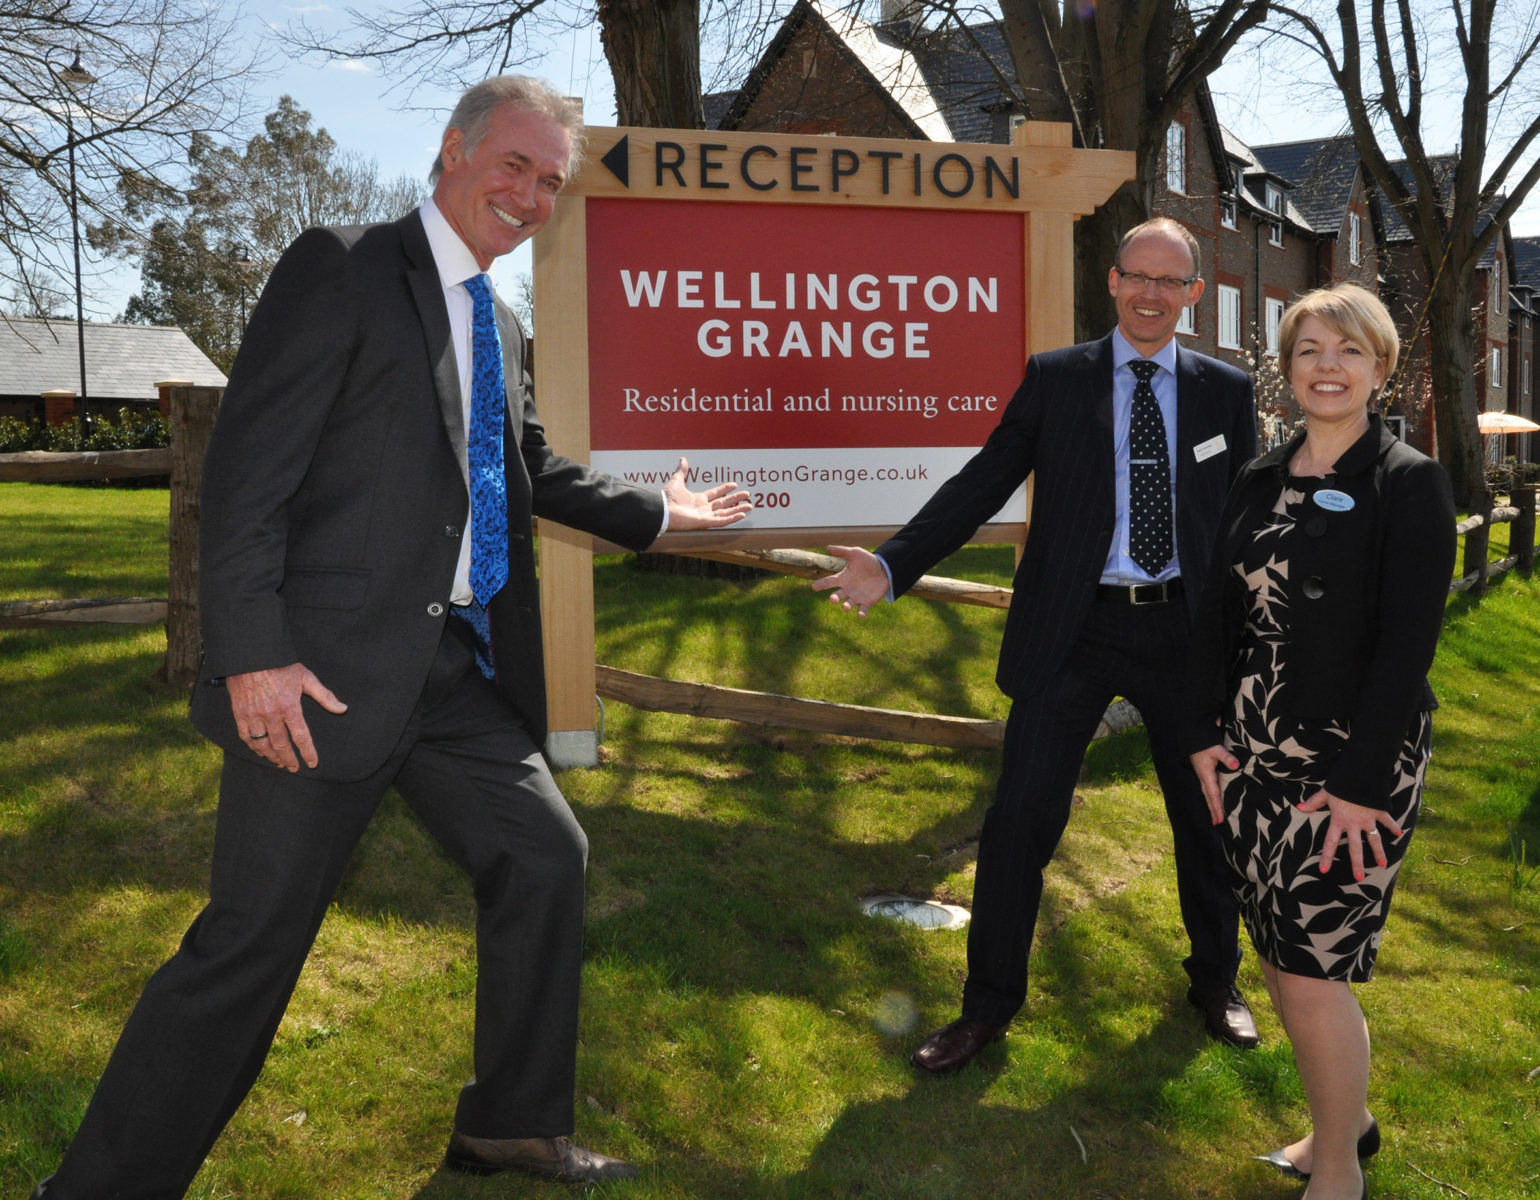 TV's Dr Hilary Jones (left) at the open day of Colten Care's Wellington Grange with Mark Aitchison, Chief Executive, and Clare Gibson, Home Manager.